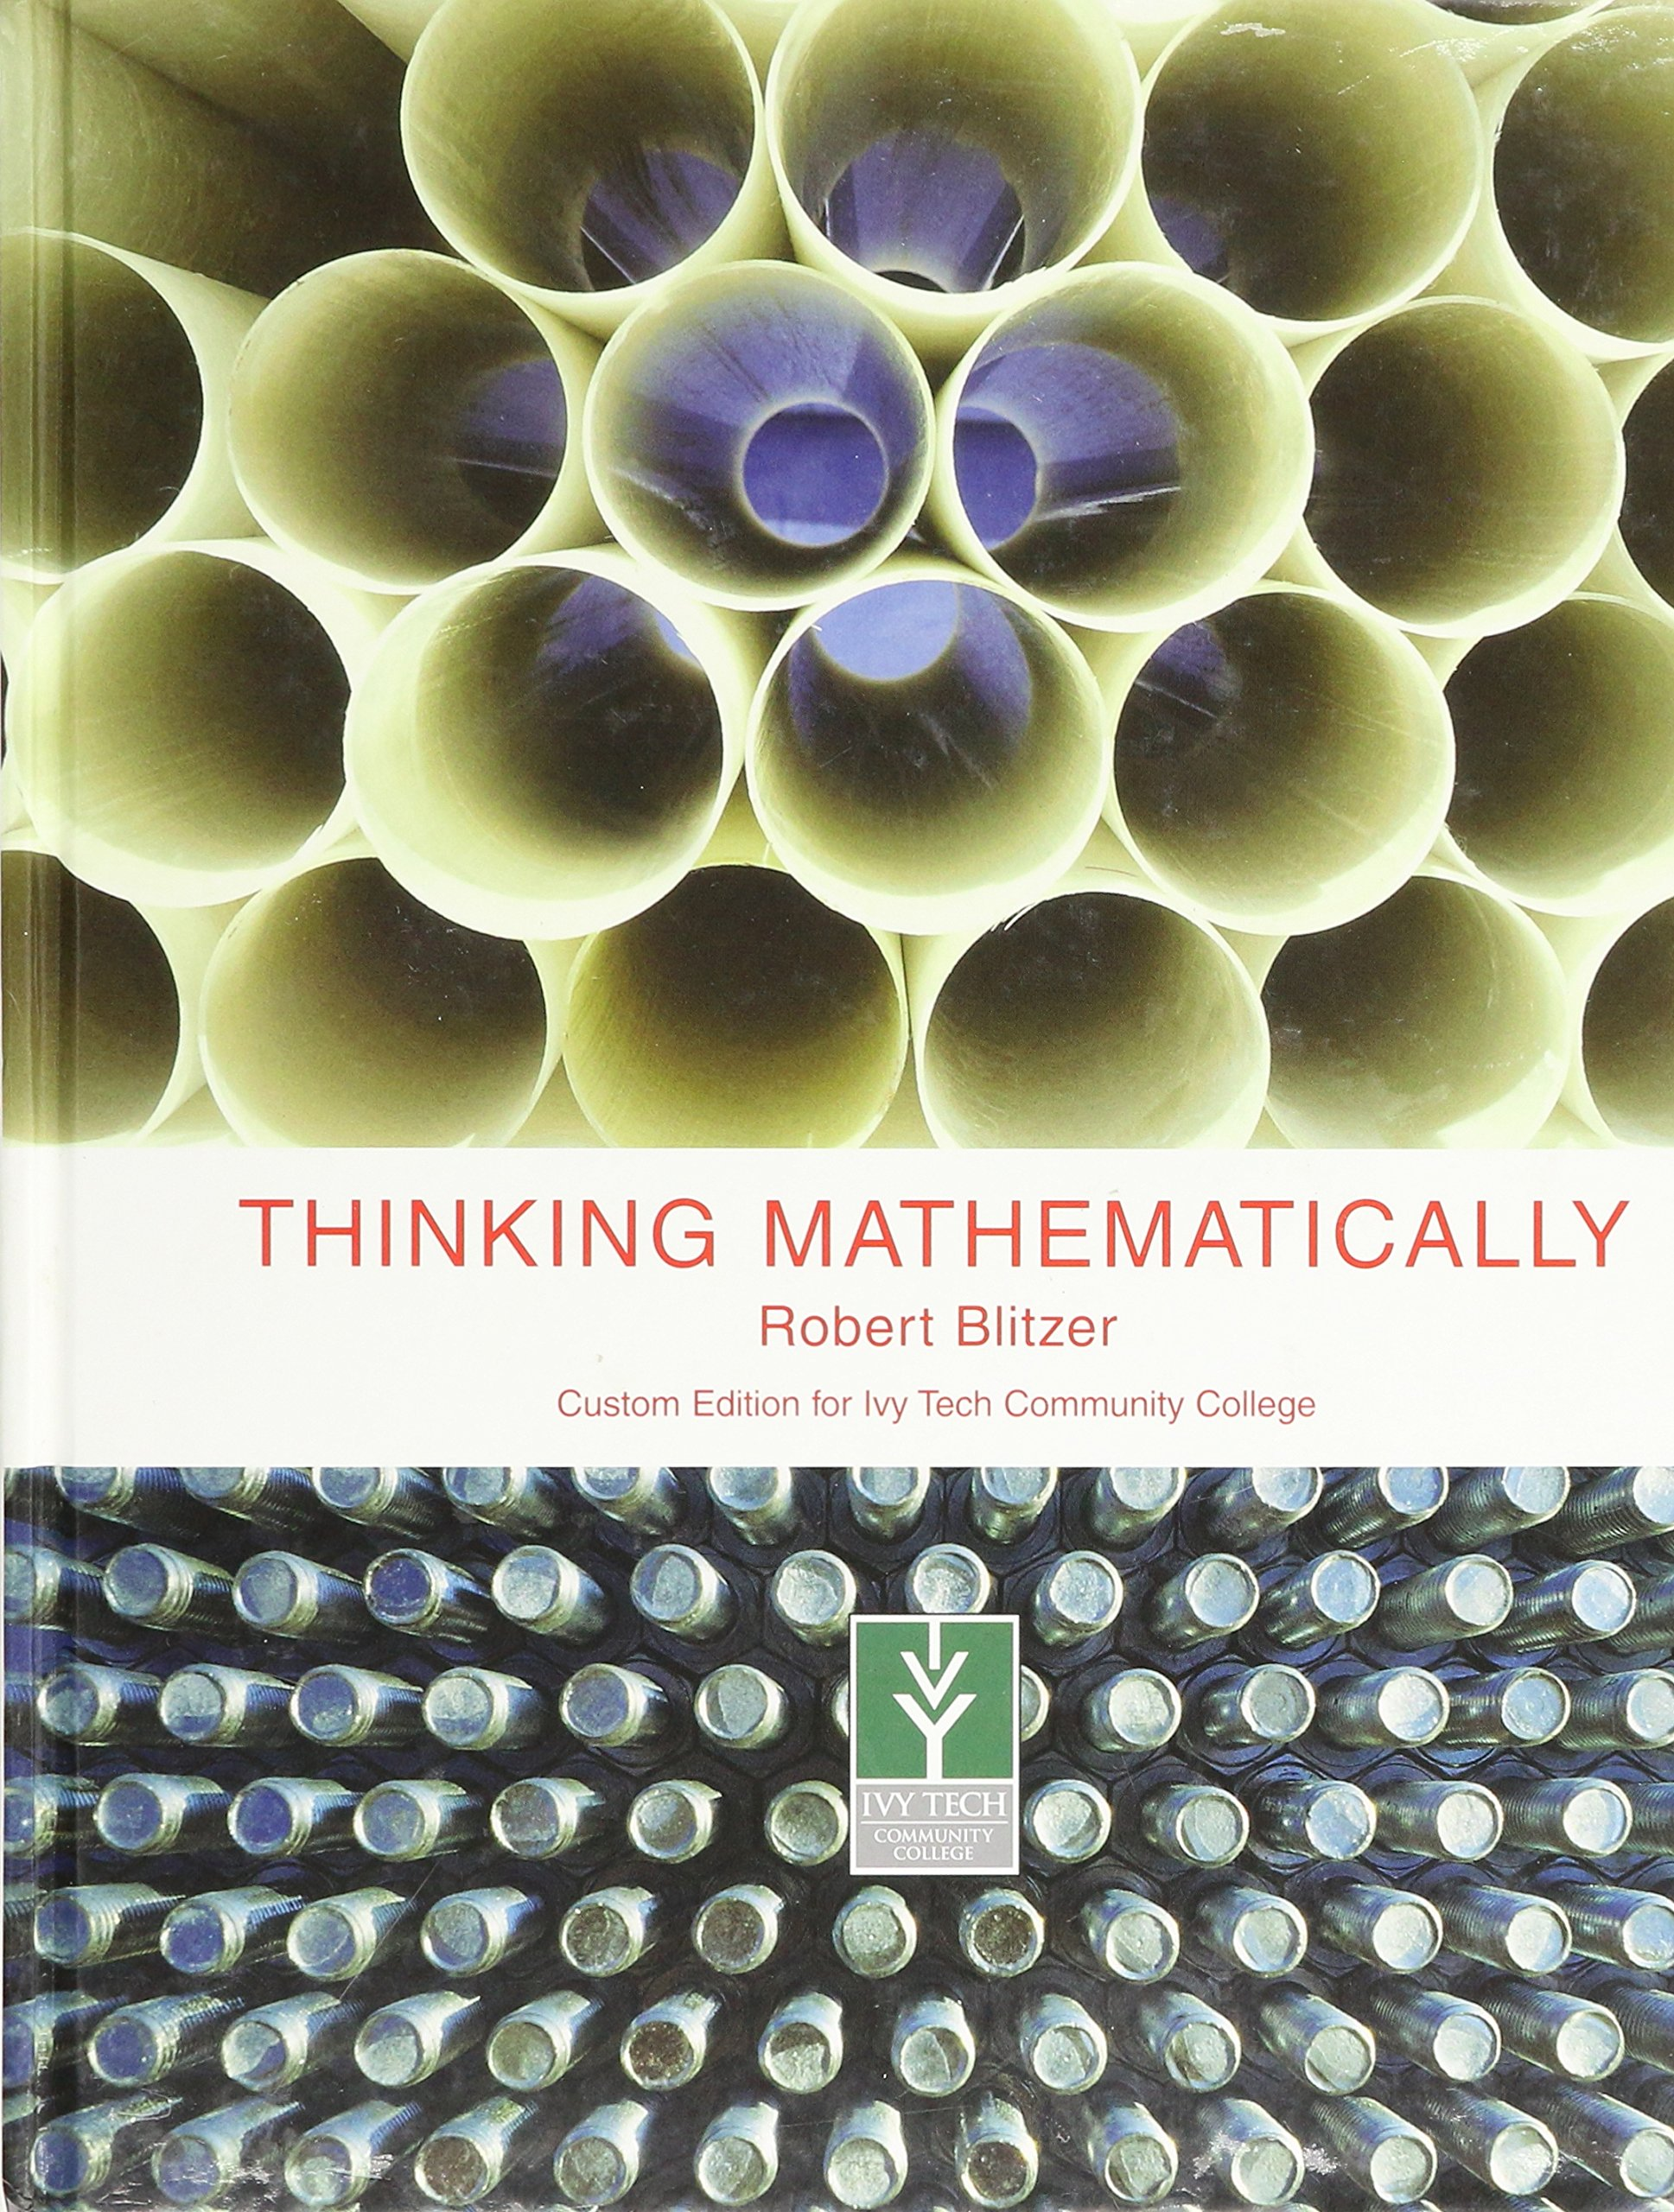 Thinking mathematically 4th edition robert blitzer 9780558063849 thinking mathematically 4th edition robert blitzer 9780558063849 amazon books fandeluxe Choice Image